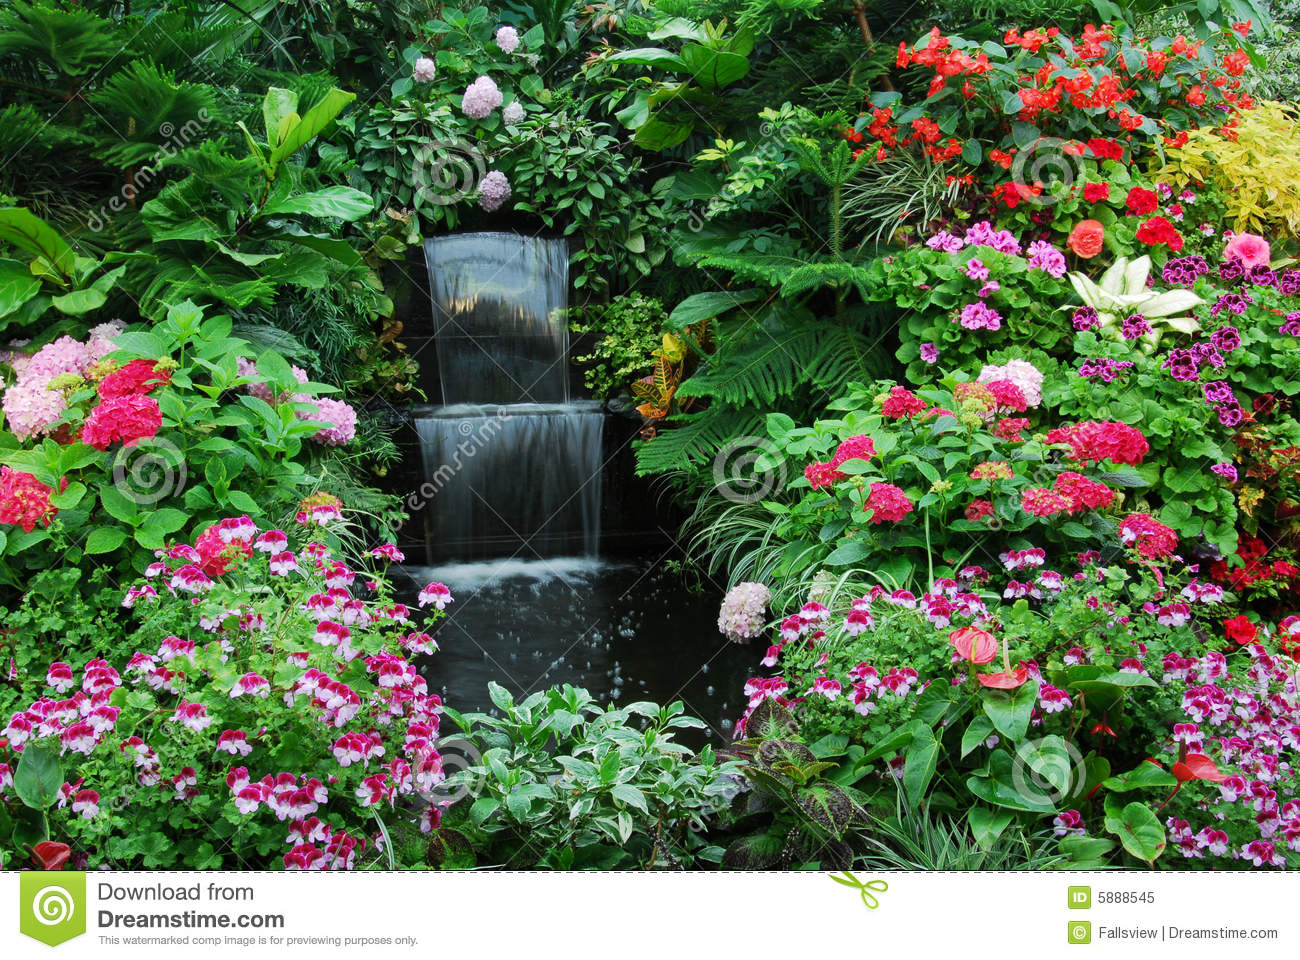 Flowers and waterfall garden stock image image 5888545 for Cascadas para jardin fotos